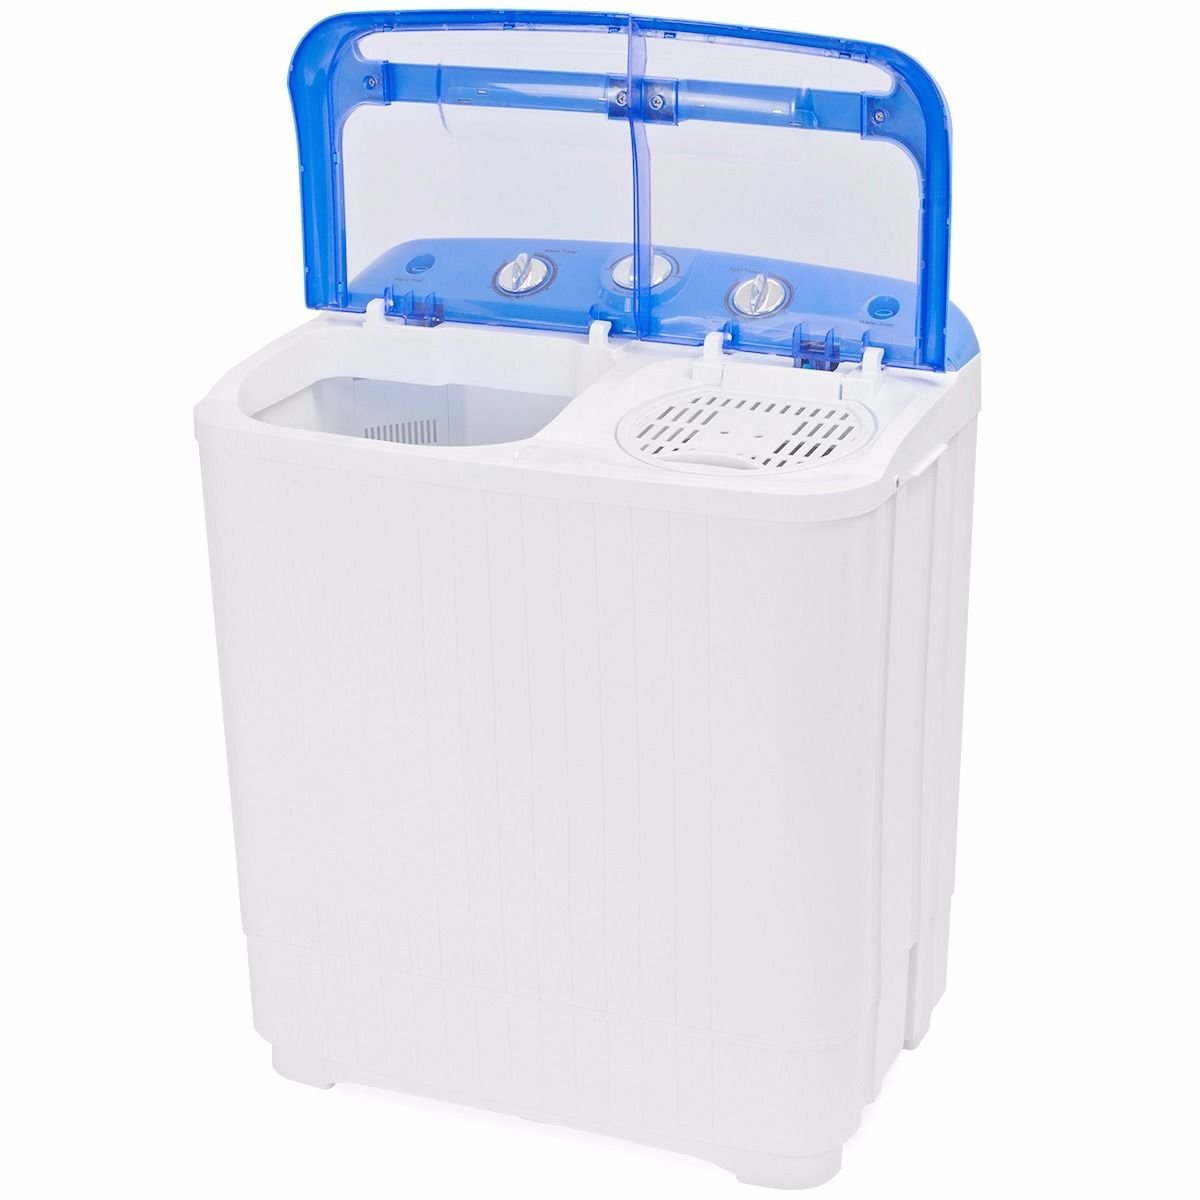 Gracelove Portable Mini Washer Dorm RV Cycle Compact 9 lbs Wash Dry Spin Machine Laundry by Love+Grace (Image #3)